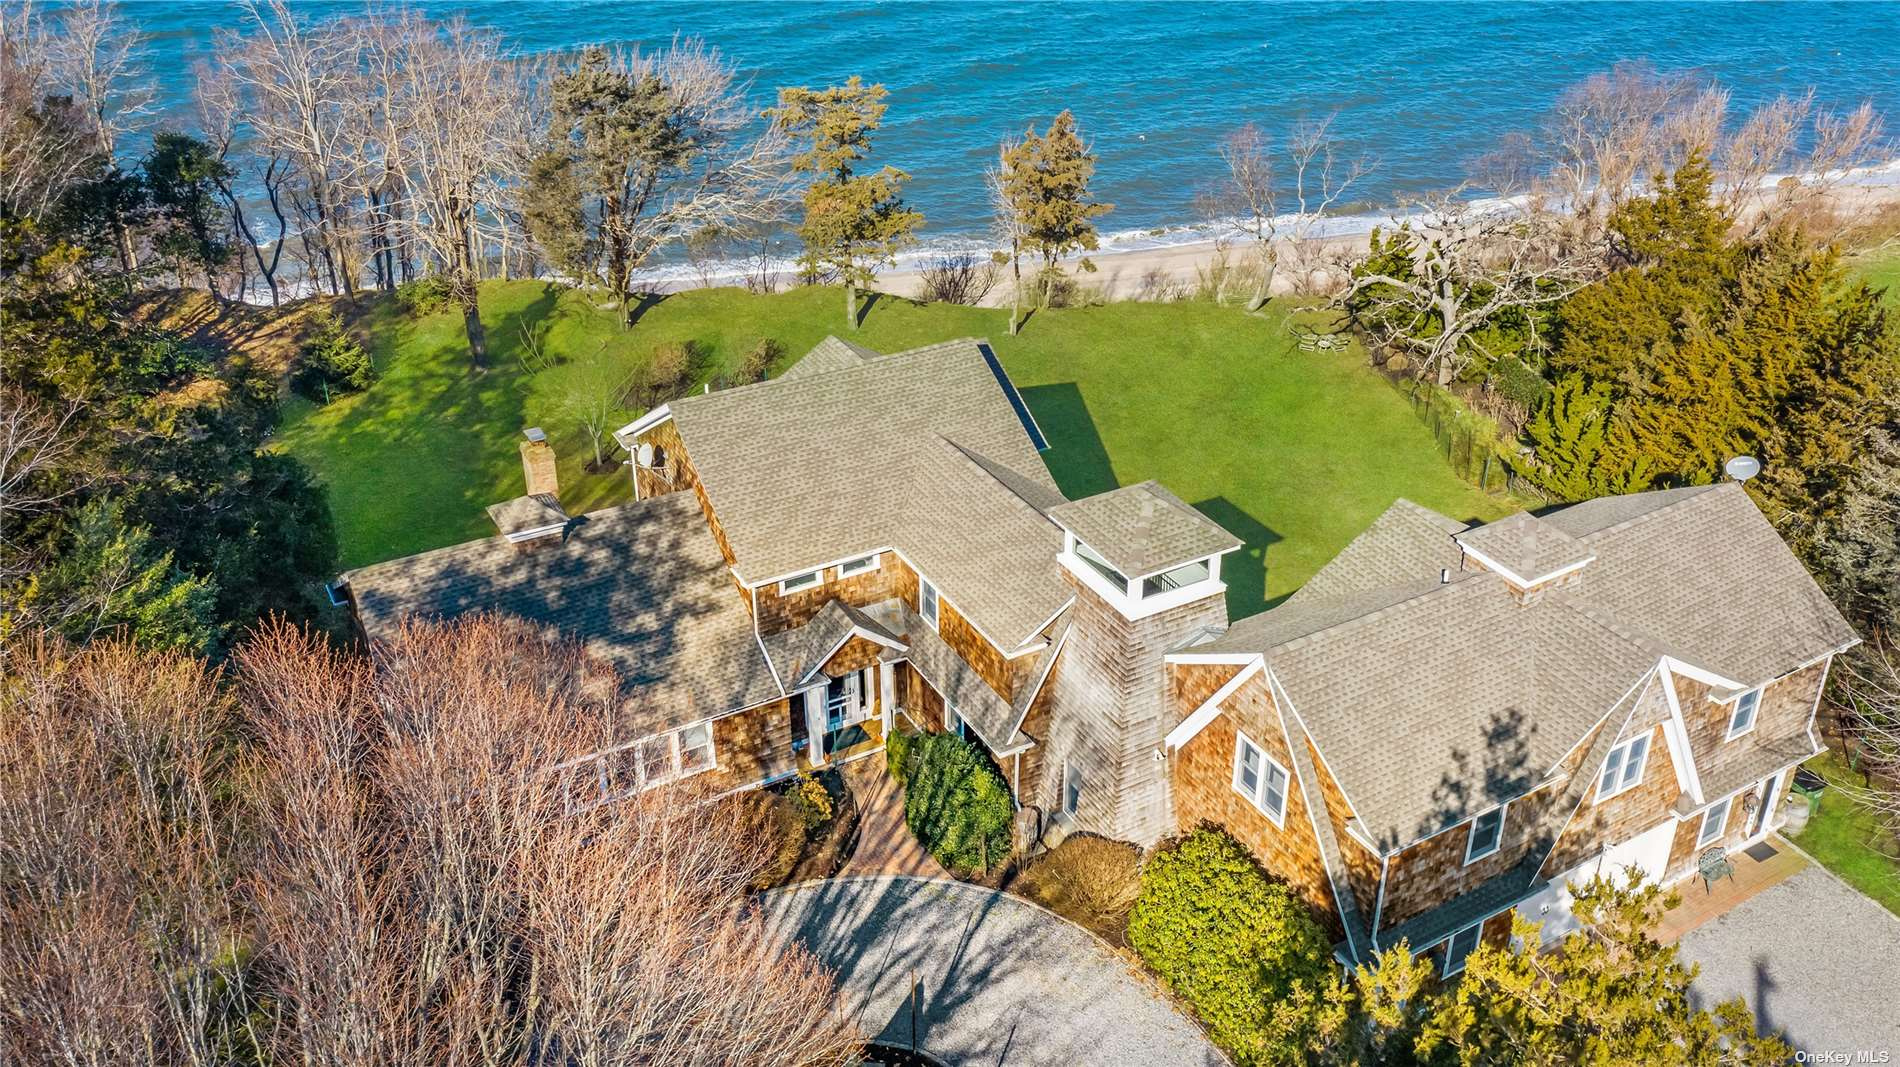 Head Down Your Long Private Driveway Boarded by Gorgeous Cedar Trees  Greeted by Your Stylish and Welcoming Cedar Shingle Home on the Sound. Hear the Water, Take in the Views, and Bask in the Nature Around You! This Home has Wonderful Generous Open Rooms all Facing the Water. Beautiful E-I-K Open to Dining Rm w/ Sliders Leading  to the Patio, Living Rm w/ FP, 2 guest beds on the 1st floor, Oversized Pantry, Laundry, and Foyer.  Upstairs the Primary Ensuite is to die for! Fully Renovated in 2017 w/ Magnificent Views,  Luxurious Bedroom & Bath, Huge Walk In Closet, Office/ Library, Storage, and Observation Tower. Accessory Apartment is Large Featuring 2 bedrooms, Open Concept LR, DR, Kitchen, Amazing Views and a Large Balcony.  Staircase Leading to Your Own Private Beach Stretching 200 Ft!  This is Your Opportunity to Own Your Dream Home!